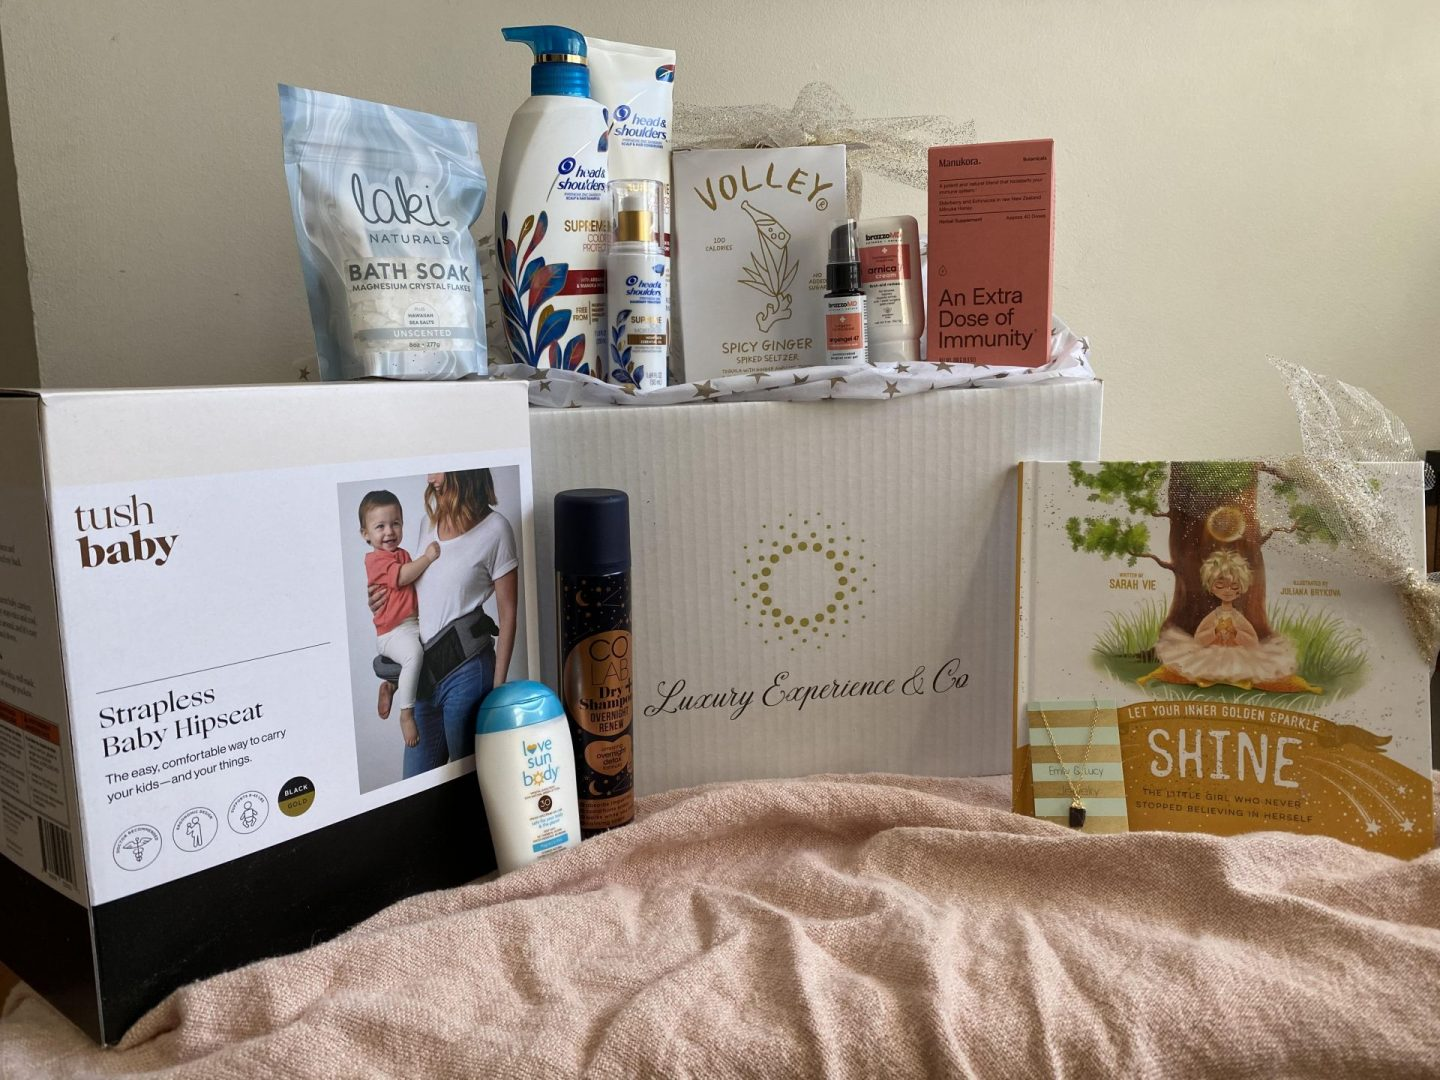 Luxury Experience & Co Celebrates Mothers' Health & Wellness With Virtual Gifting Experience